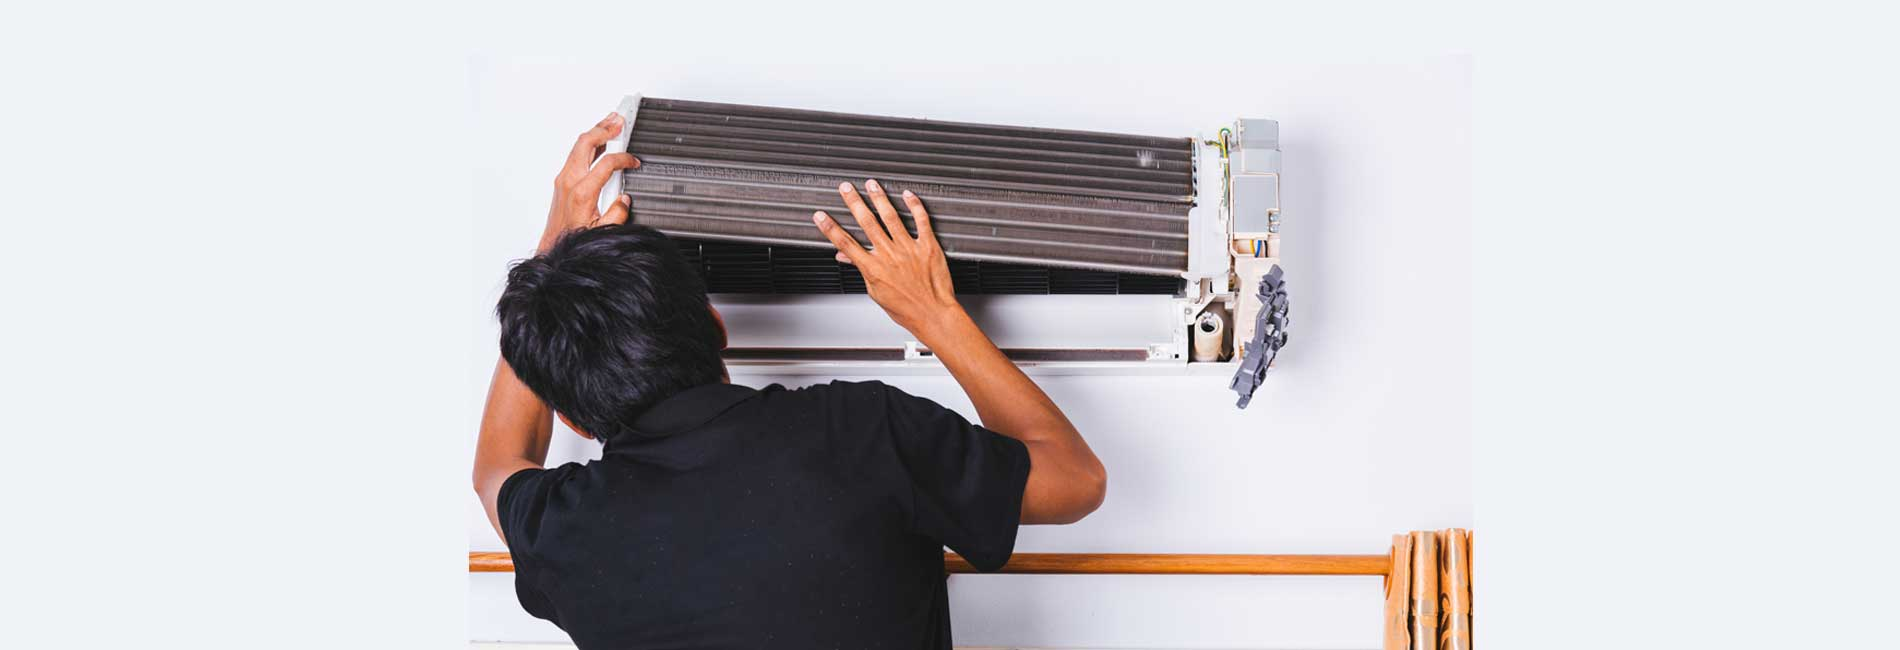 Bluestar Air Conditioner Repair in Ennore